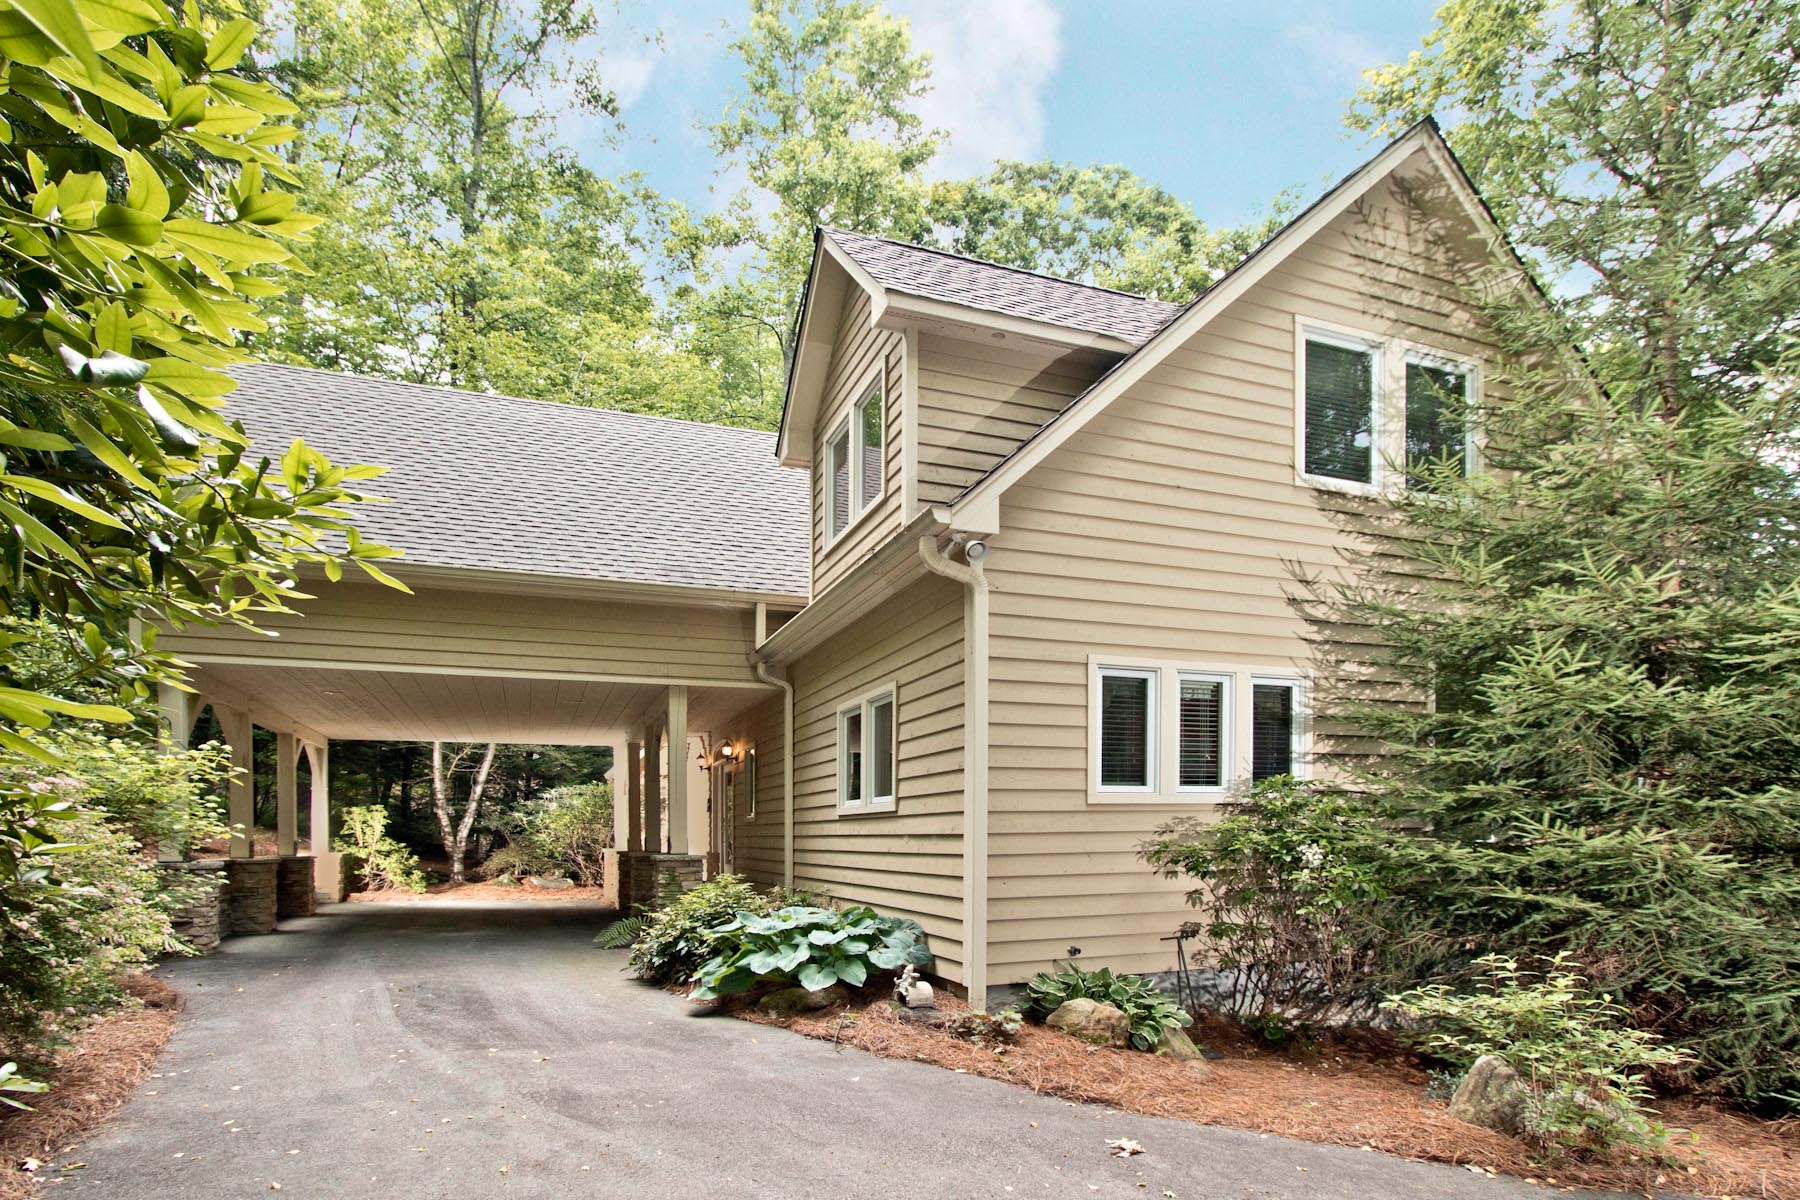 Single Family Home for Sale at 636 Lost Trail Highlands, North Carolina, 28741 United States